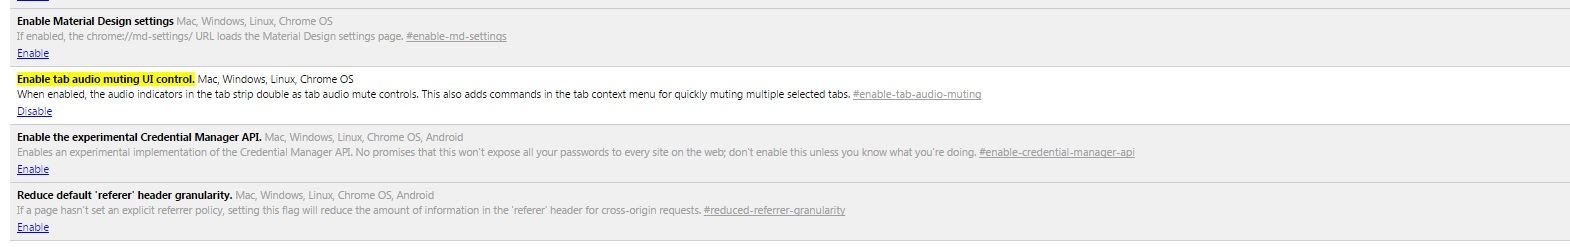 Enable Tab Audio Muting